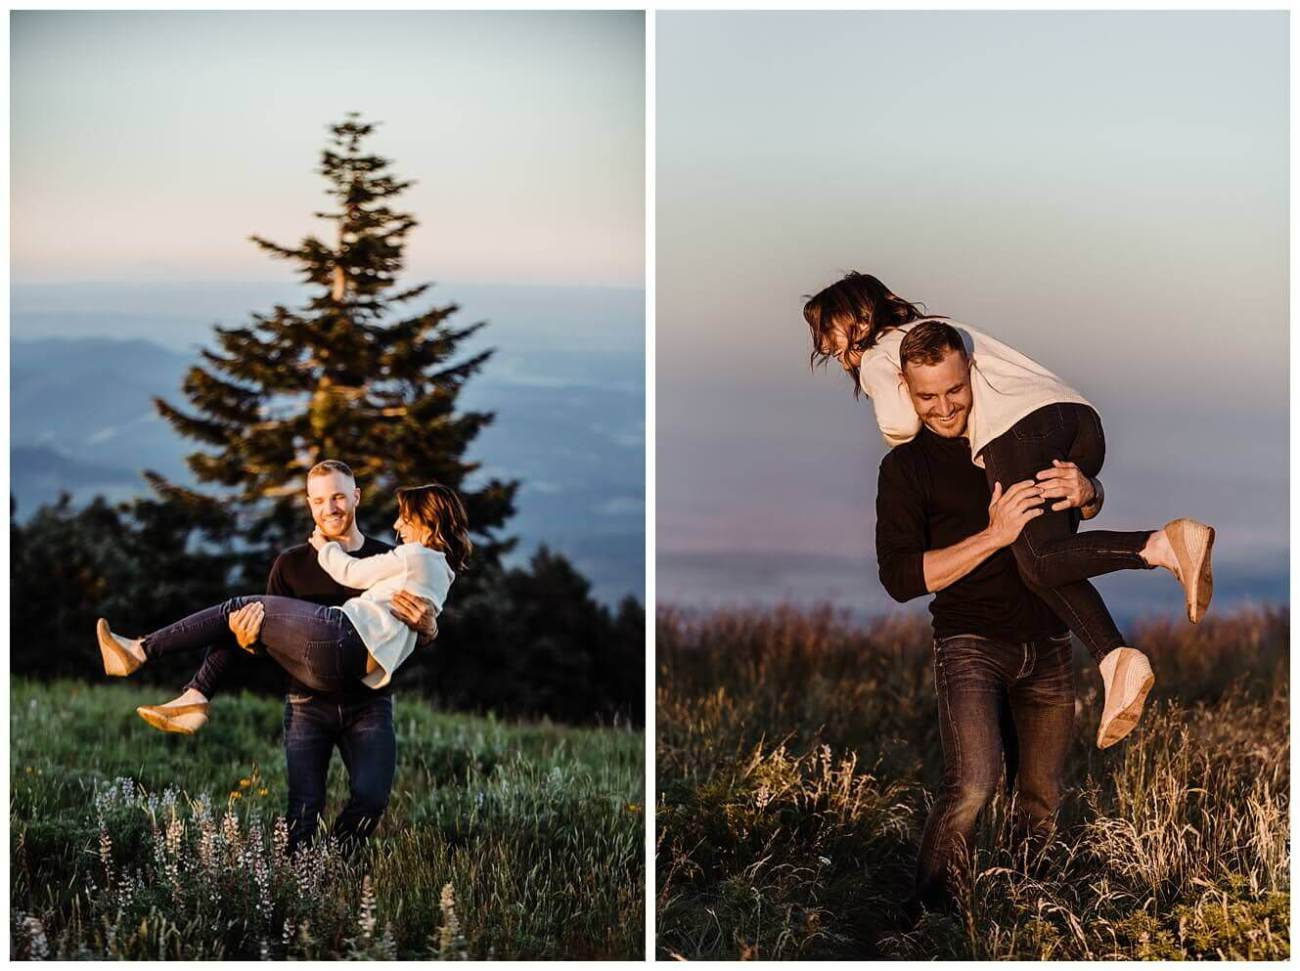 Corvalis,Mary's Peak,S Photography,adventure session,elopement photographer,engagement session,intimate wedding,minimalist elopement,national park wedding,oregon,pacific northwest,